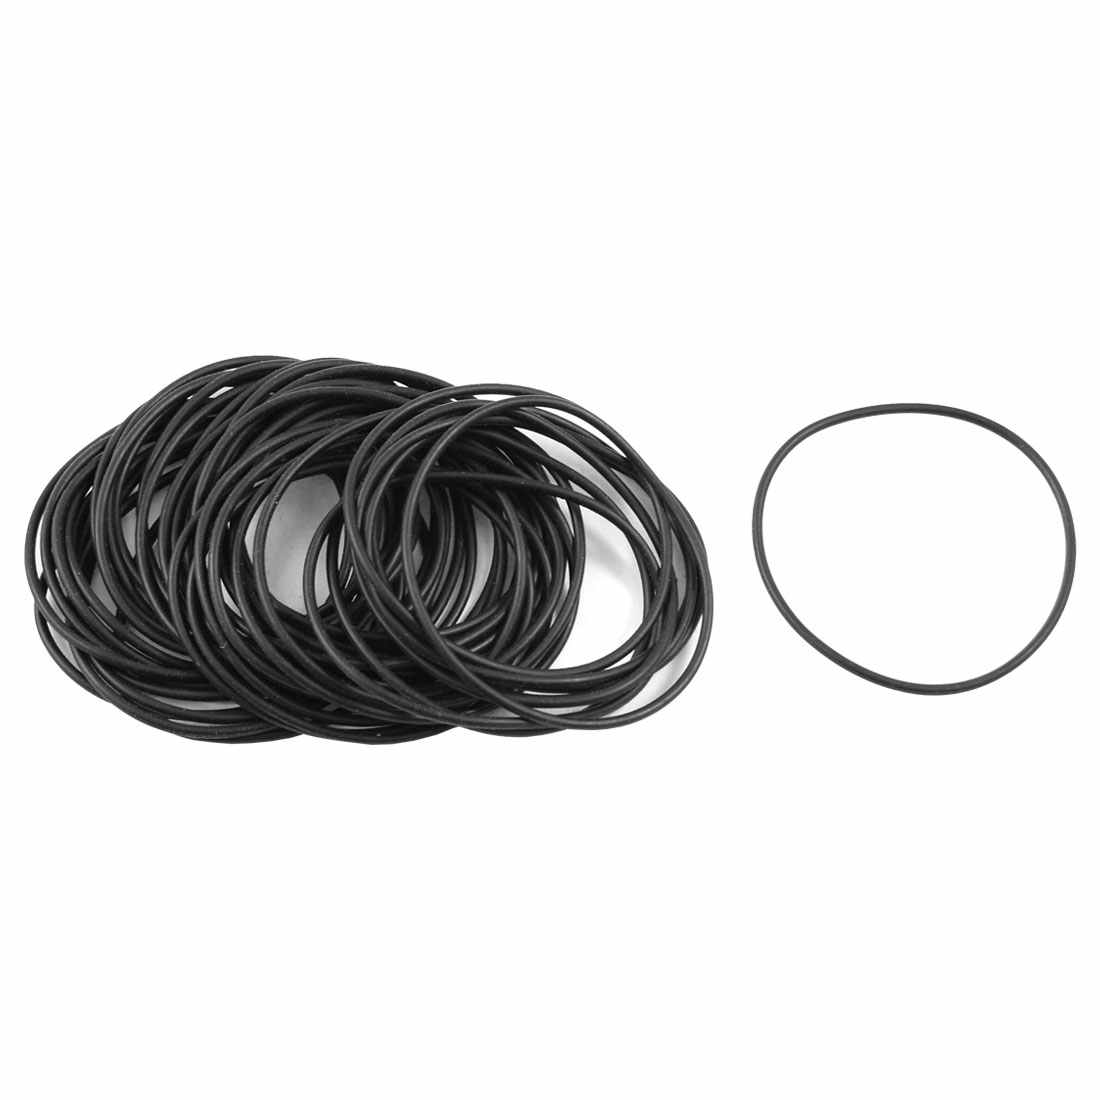 Uxcell 50Pcs/lot  1.5Mm Black Nitrile Rubber O Rings Oil Sealing Gaskets Id  42 | 47mm | 53mm | 85mm Hot Sale